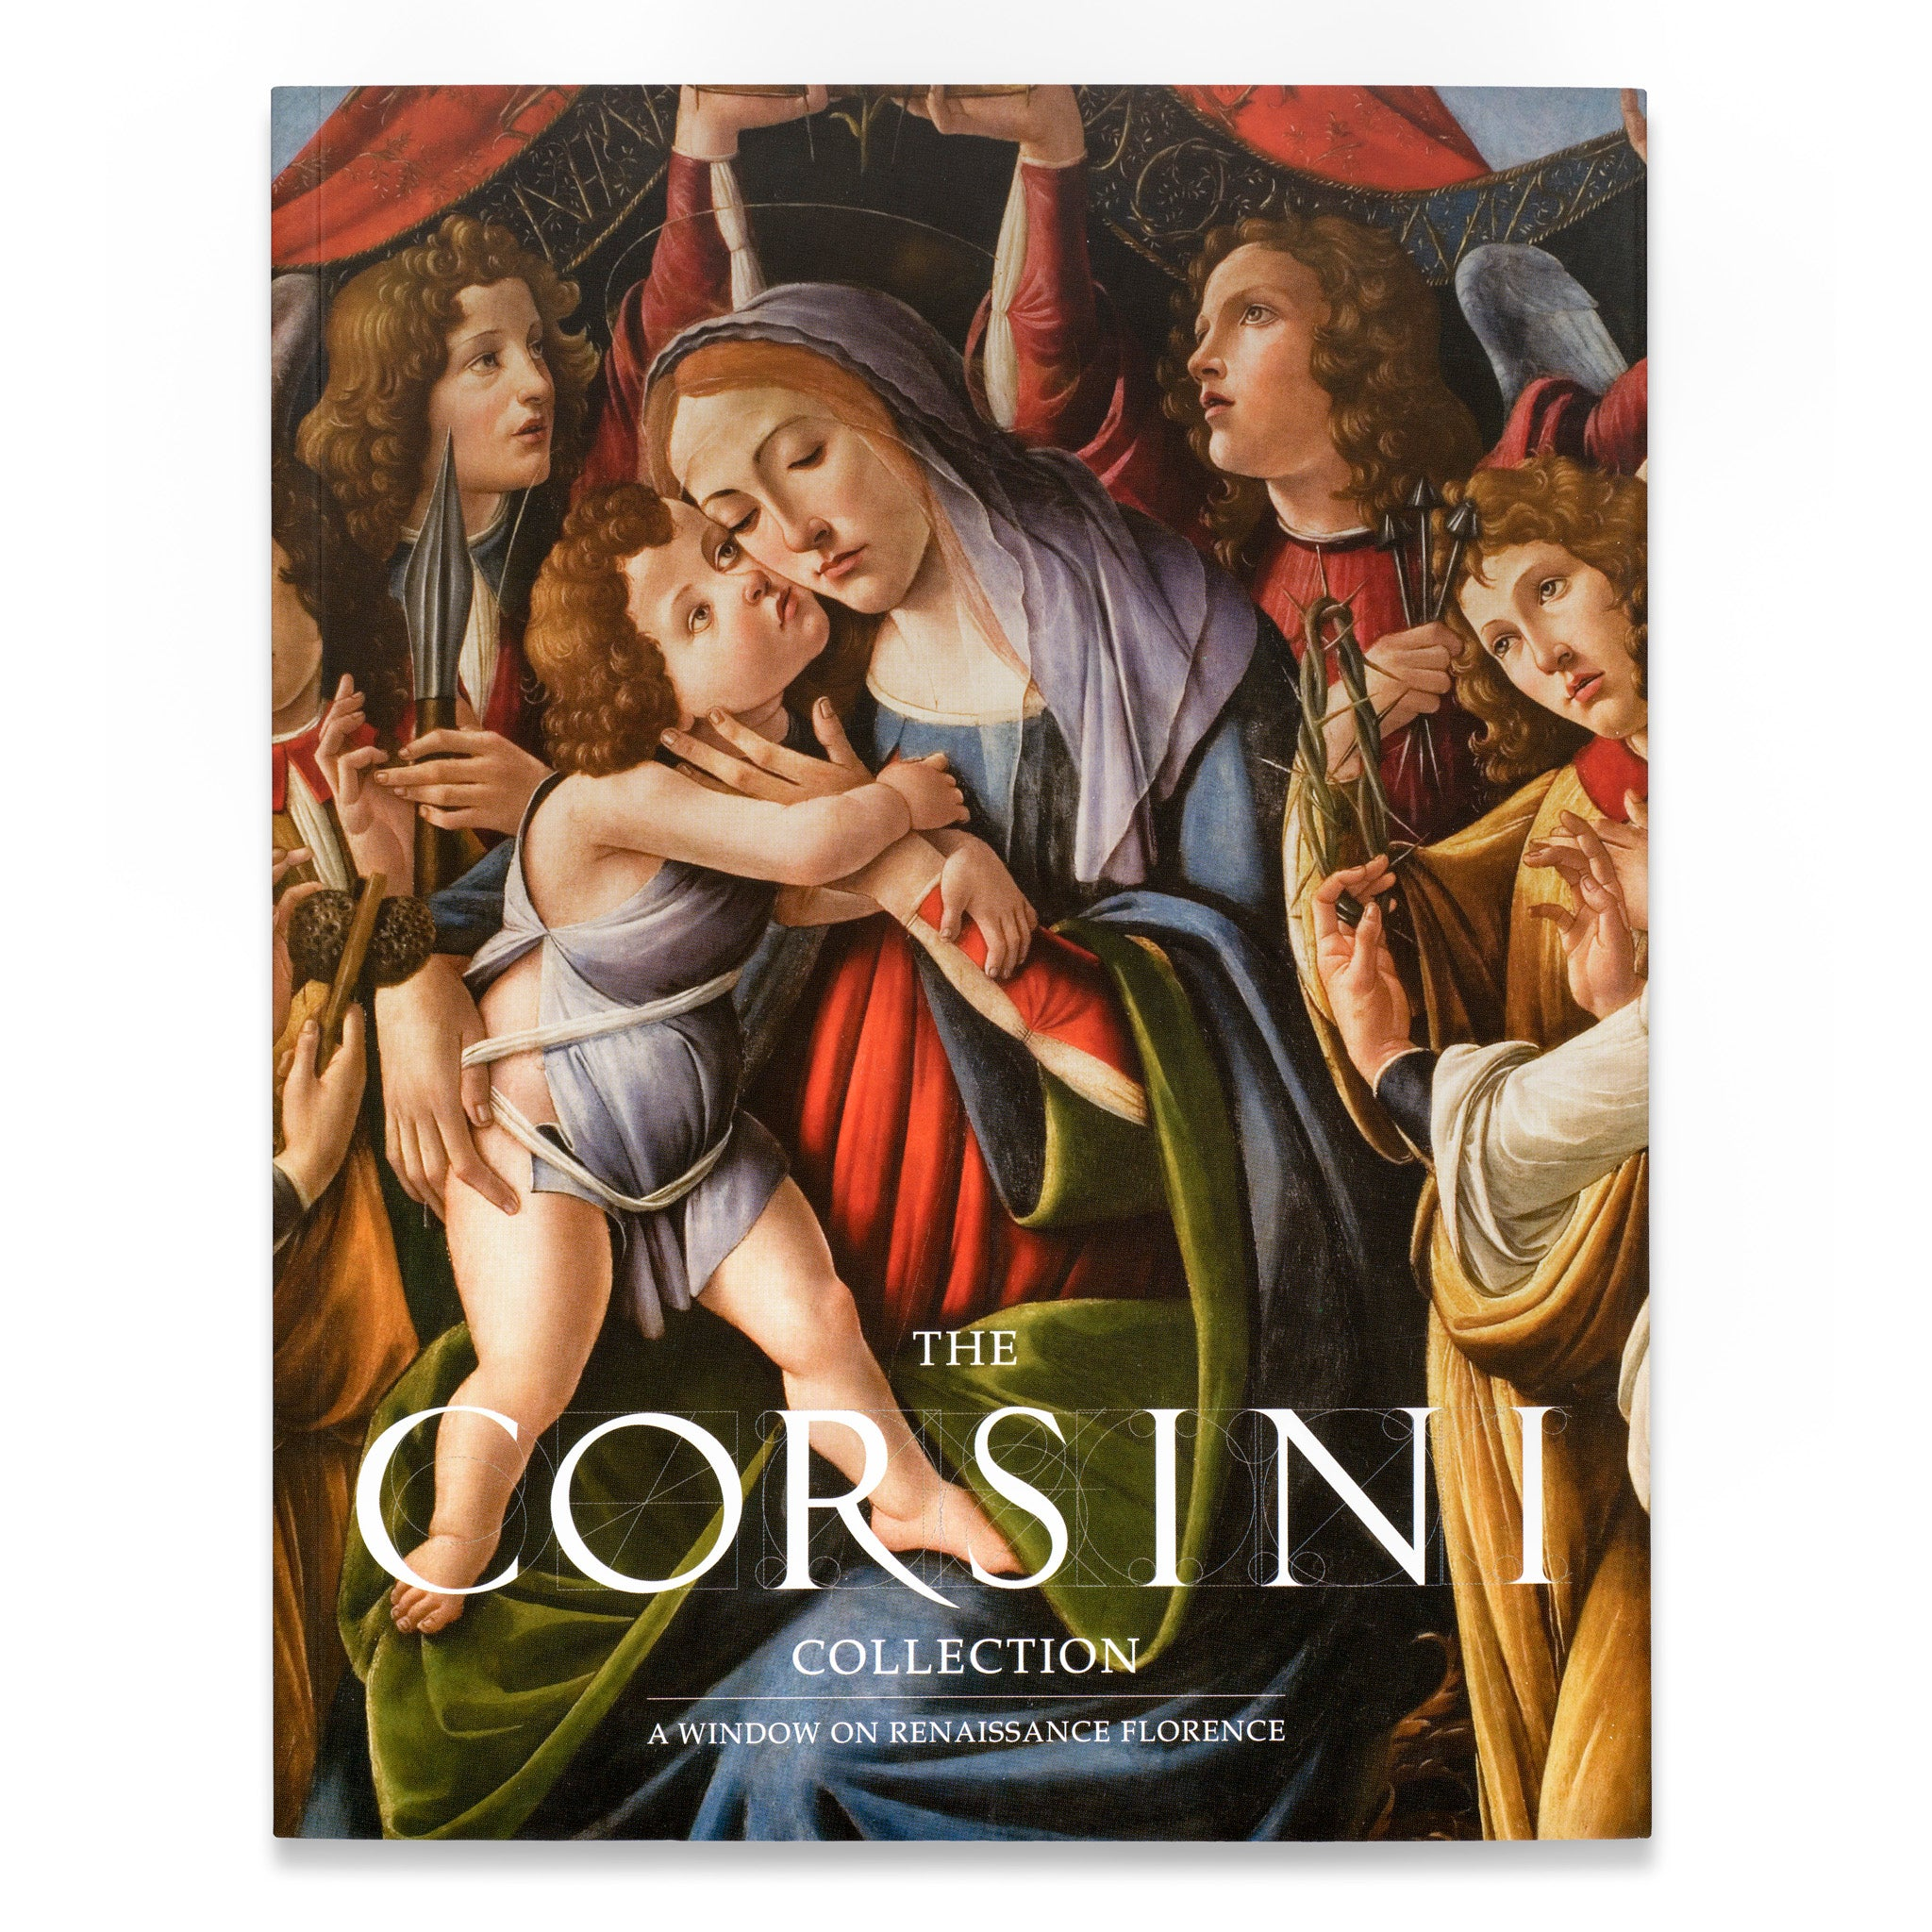 The Corsini Collection: A Window on Renaissance Florence Image